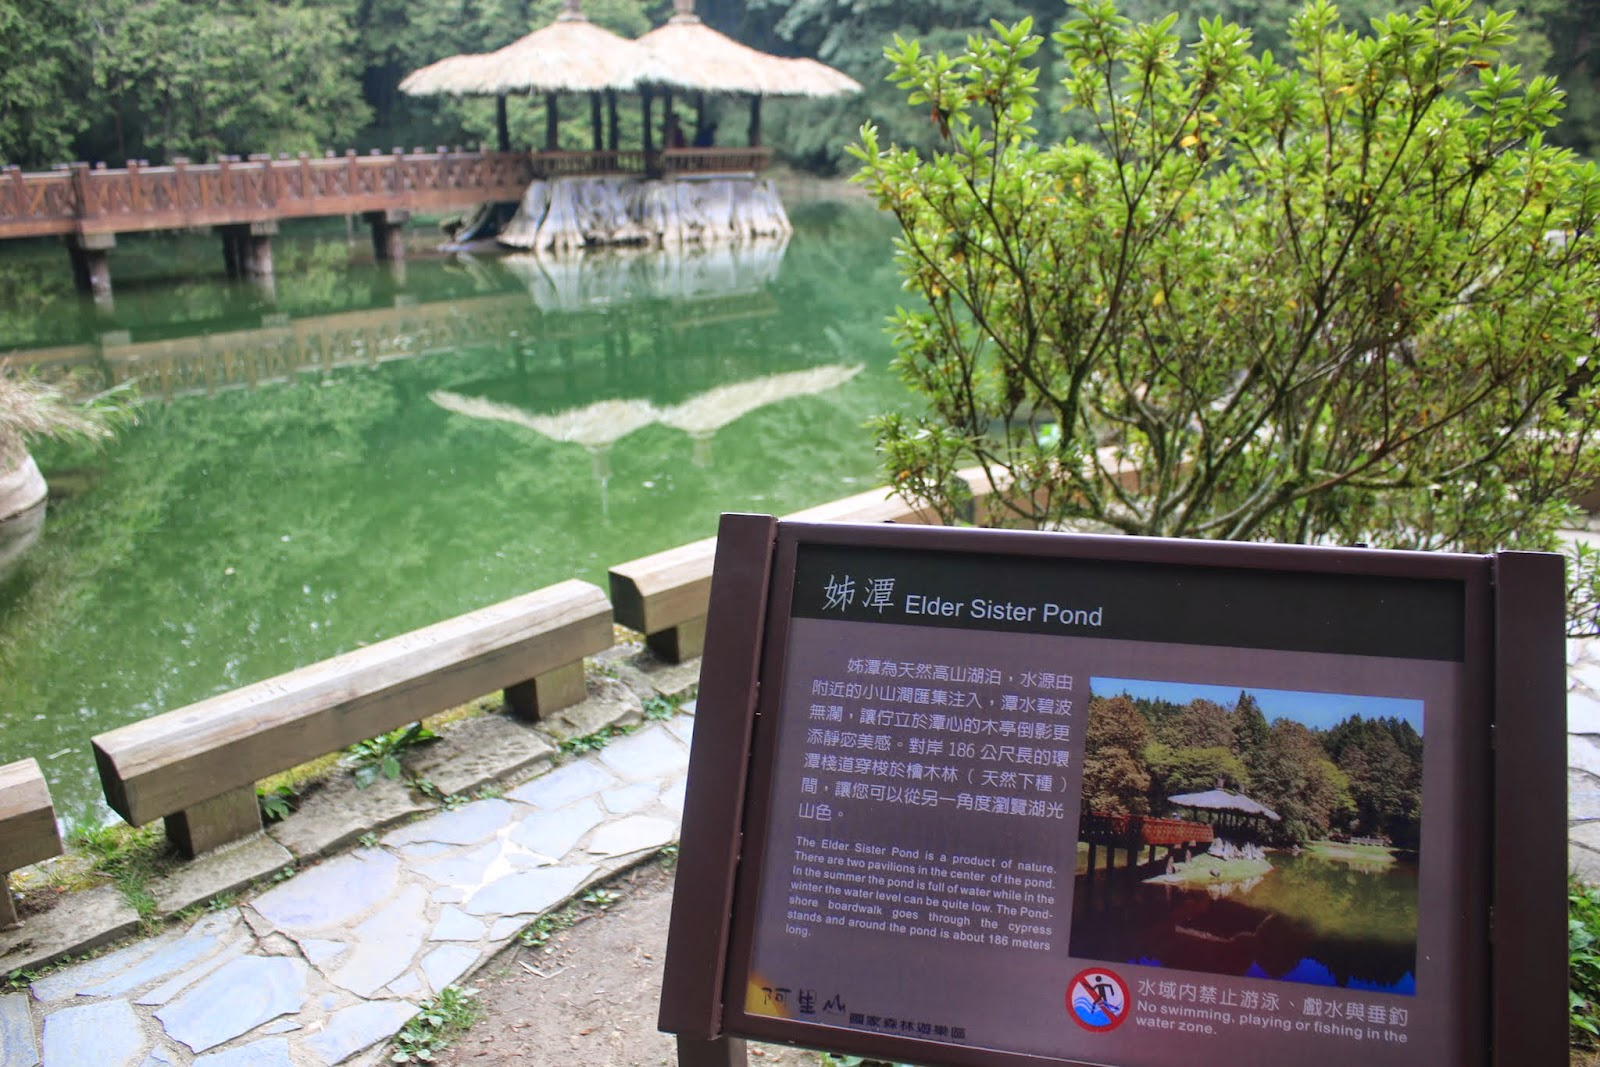 Elder Sister Pond at Alisan National Scenic Area in Chiayi county of Taiwan